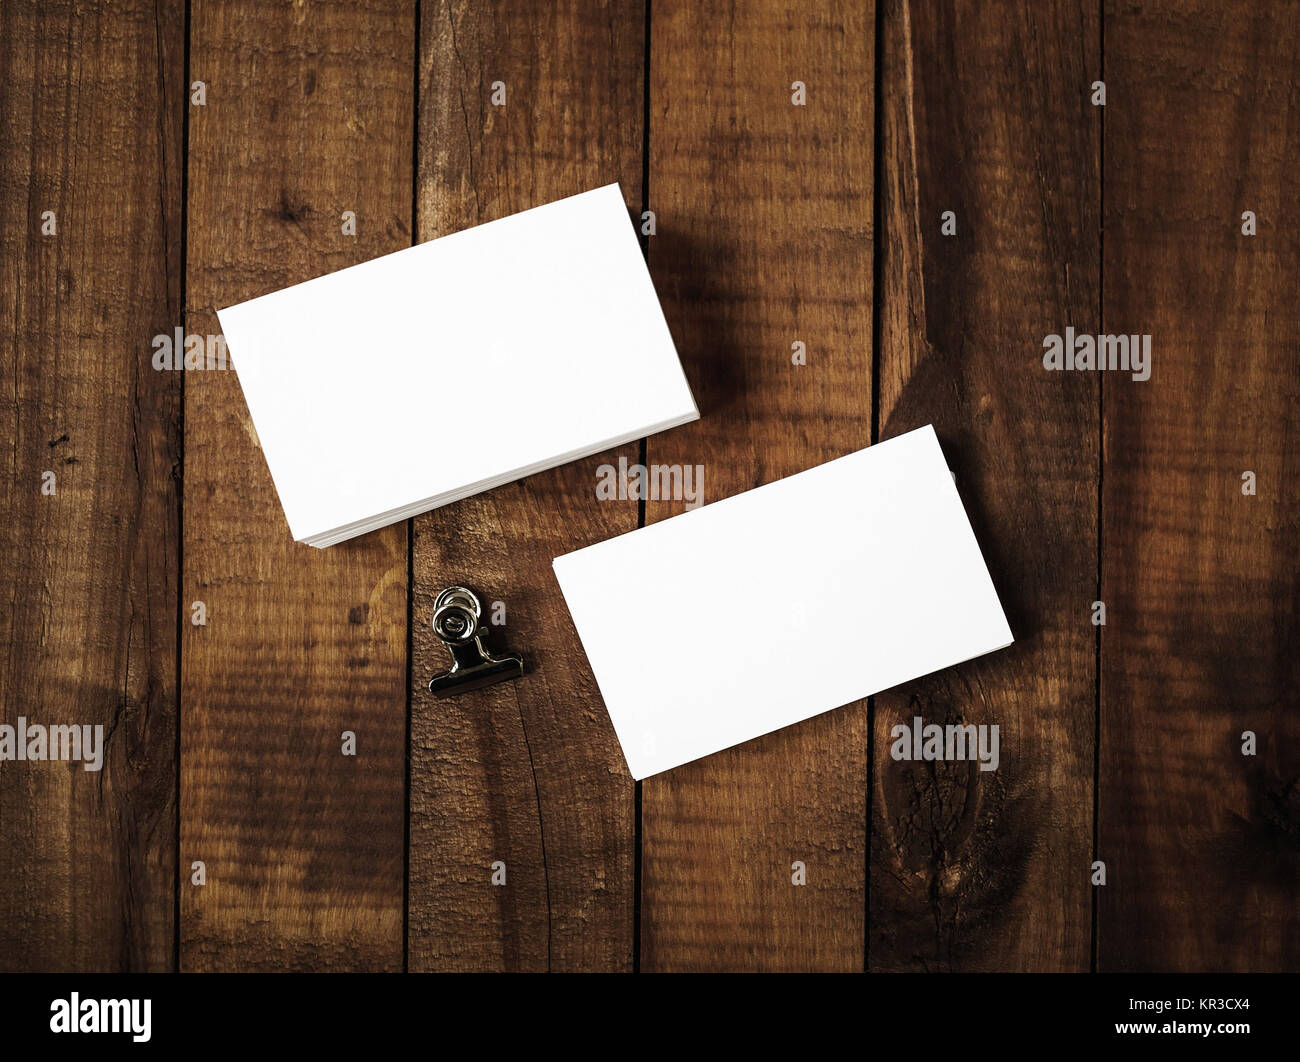 Blank business cards - top view Stock Photo: 169106396 - Alamy